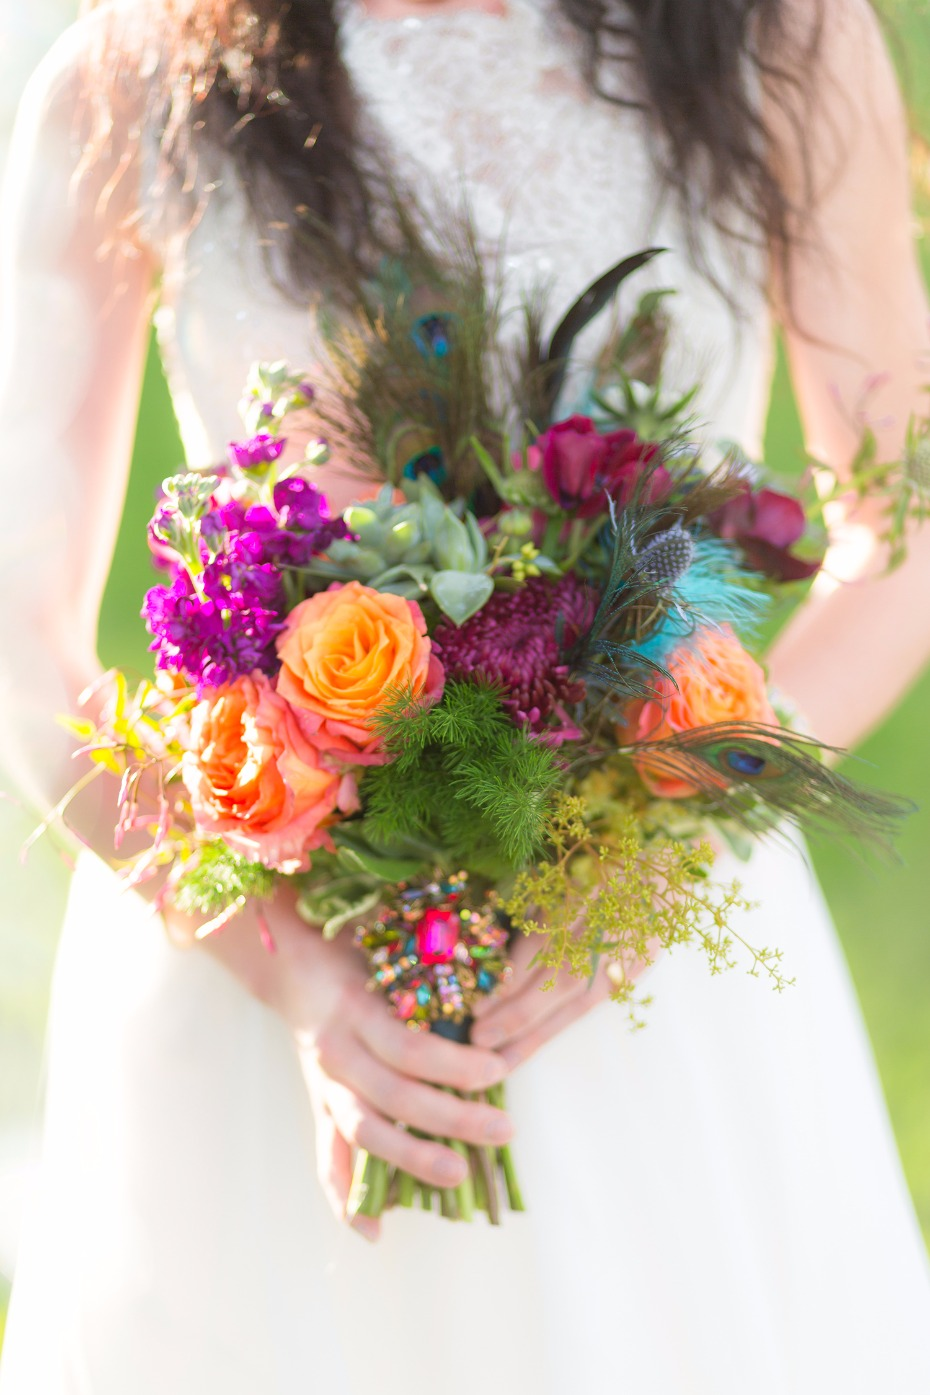 Jewel toned bouquet with peacock feathers